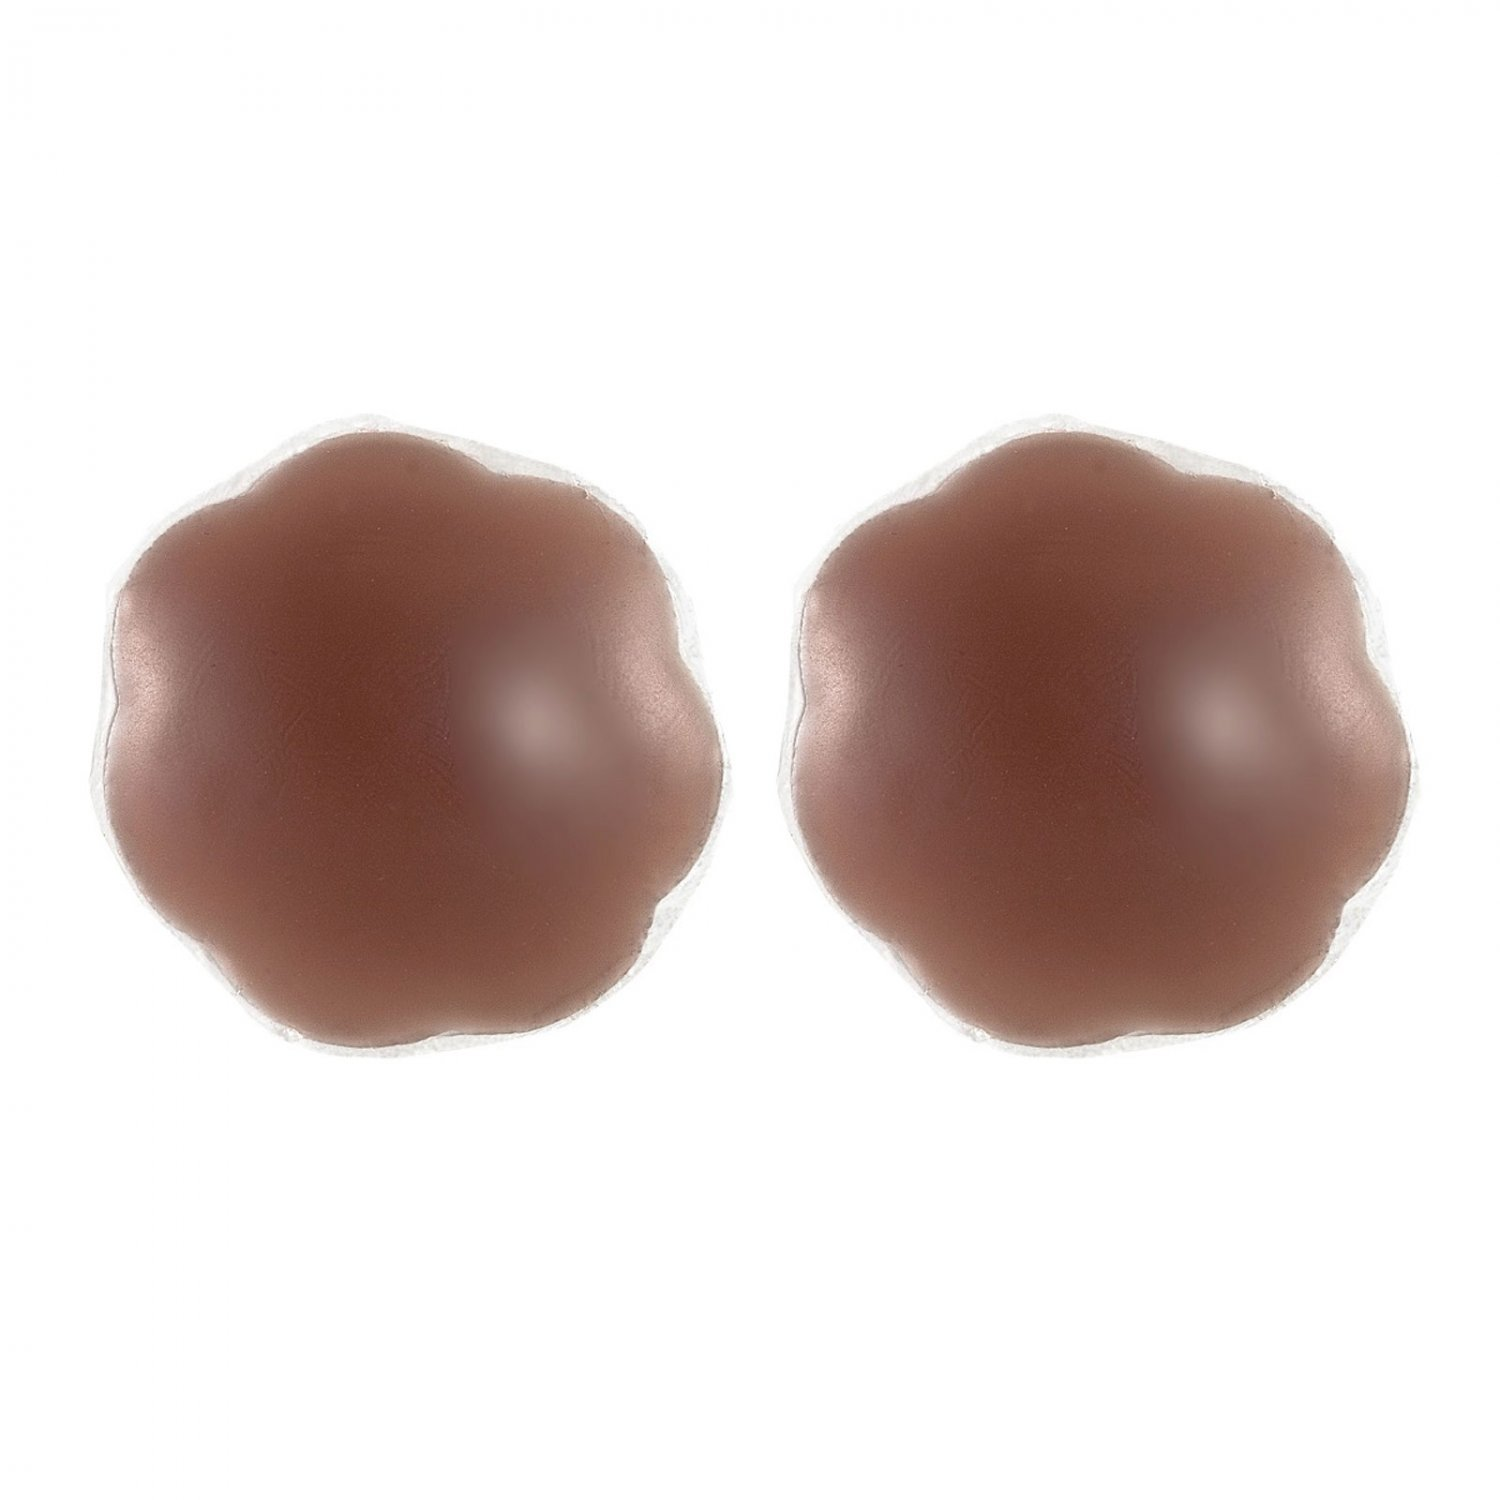 Braza Silicone Gel Petal Tops Reusable Nipple Covers 7900P, Cocoa